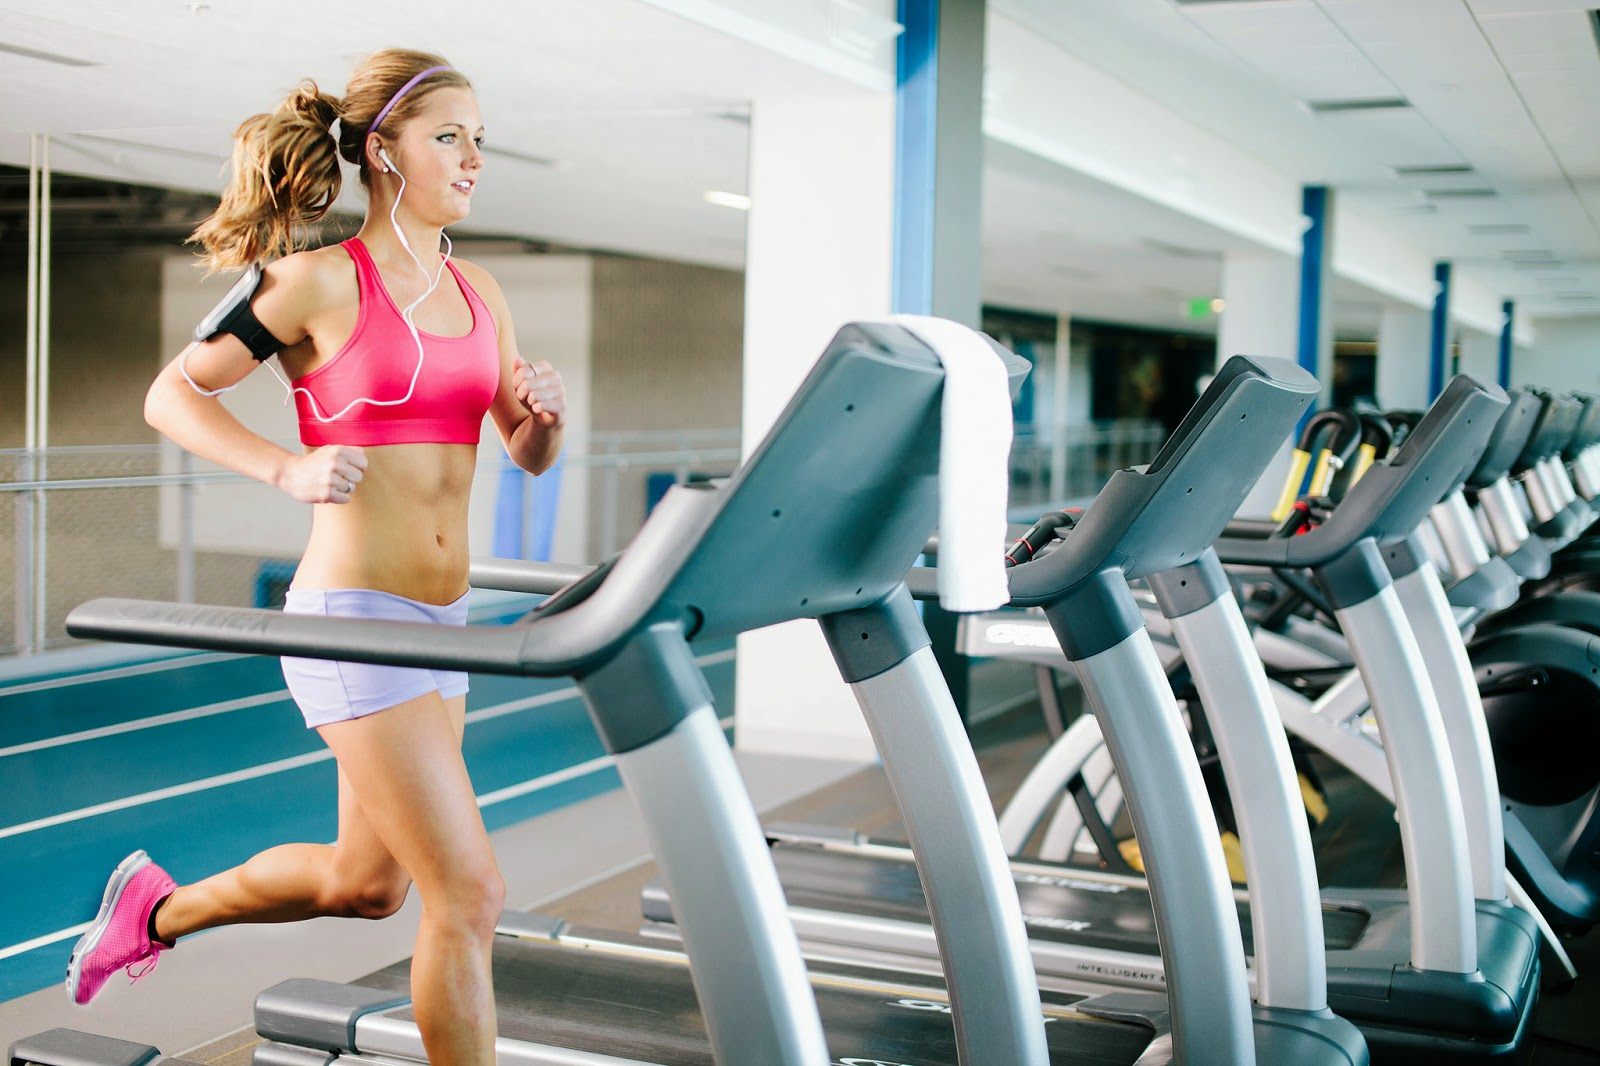 How to lose weight without cardio